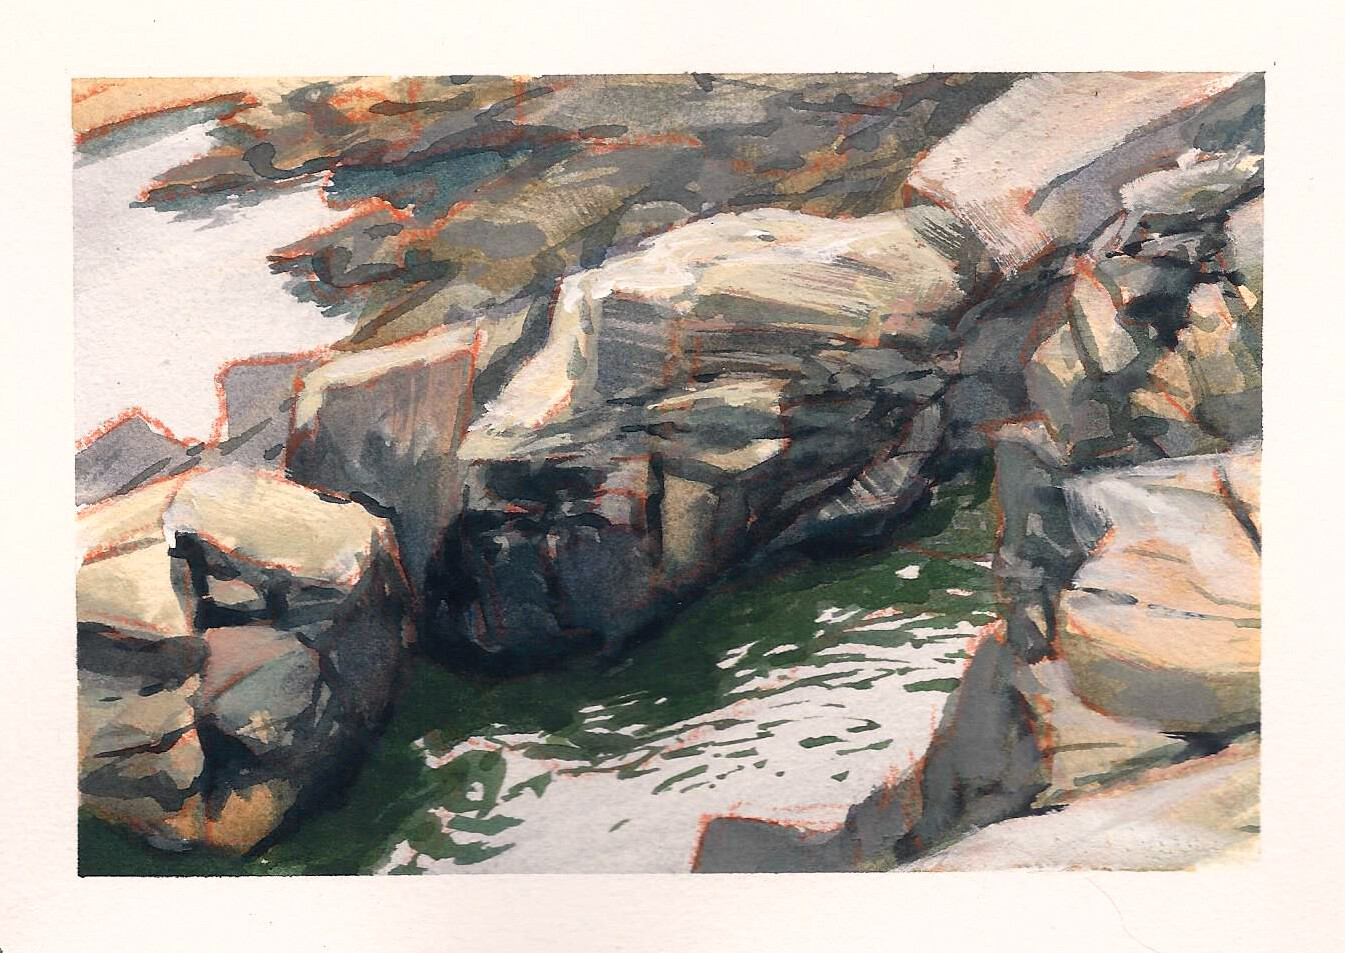 Photostudy of some rocks on the beach in Nova Scotia